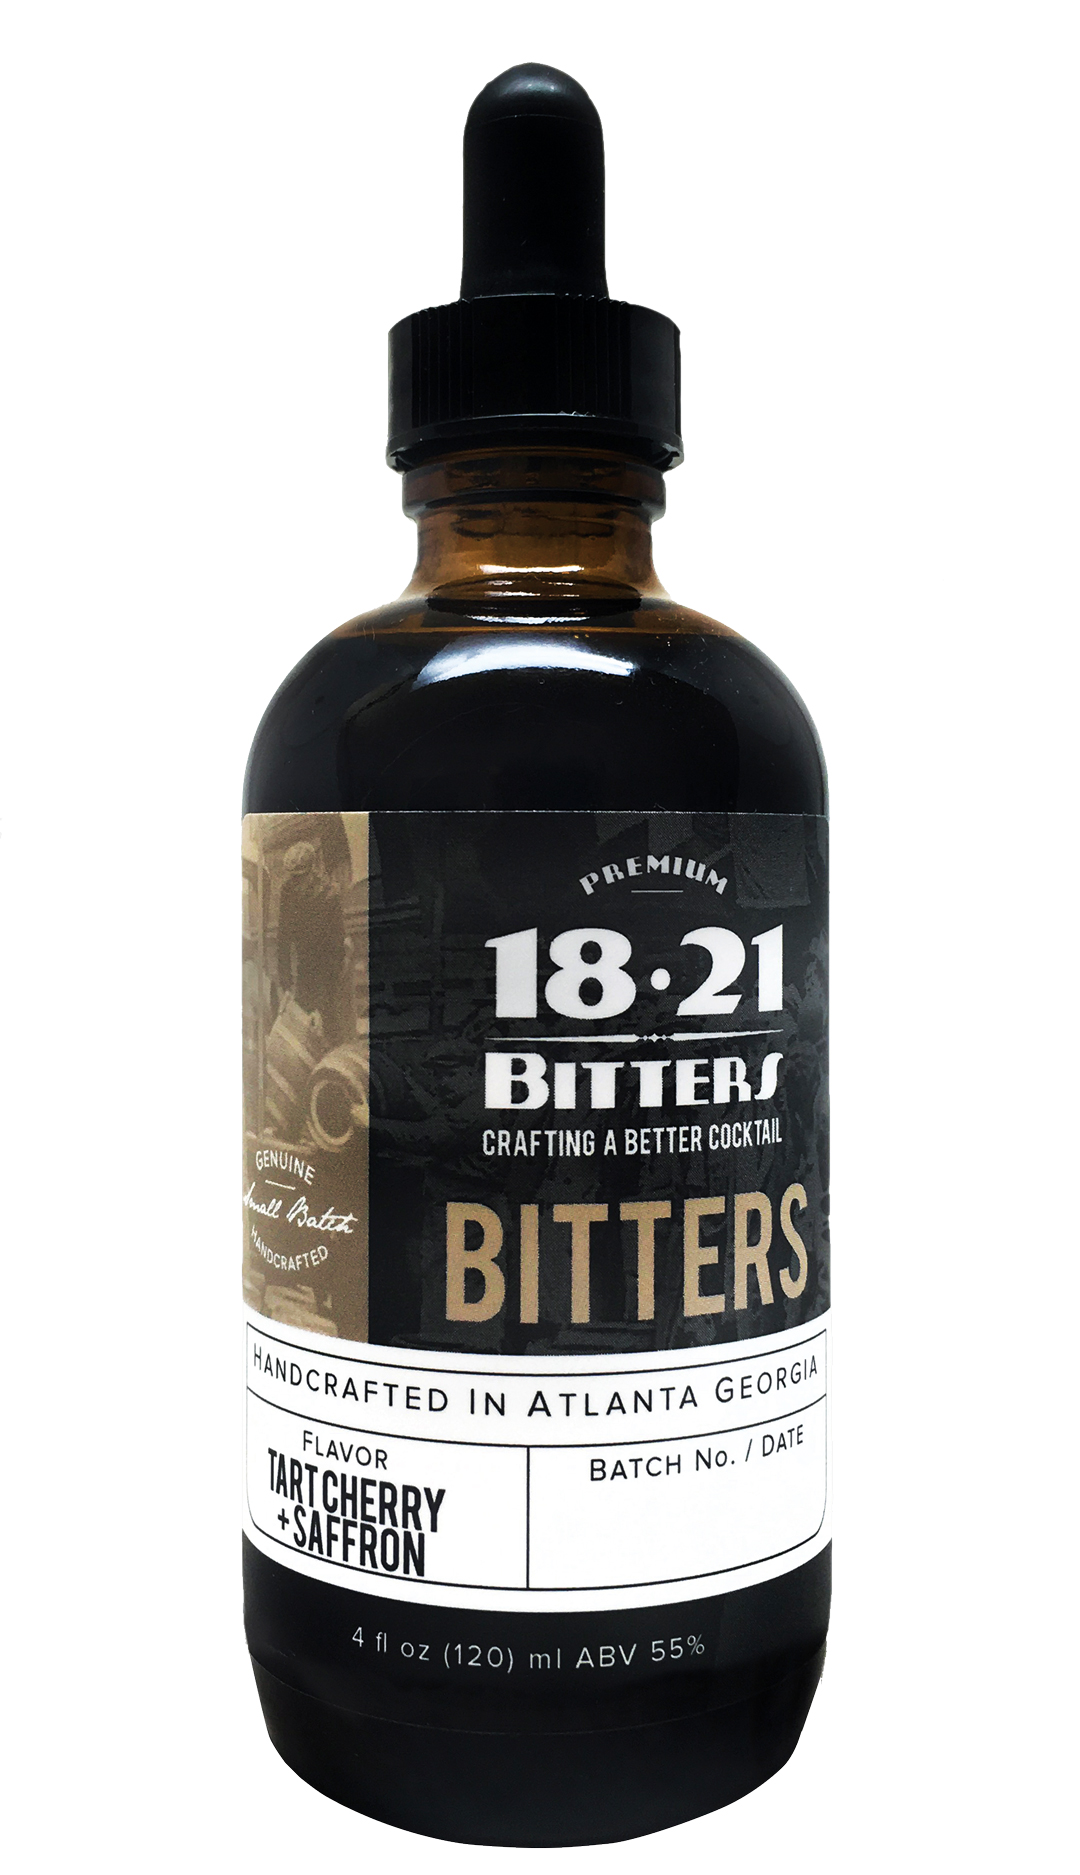 Made in Atlanta: 18.21 Bitters